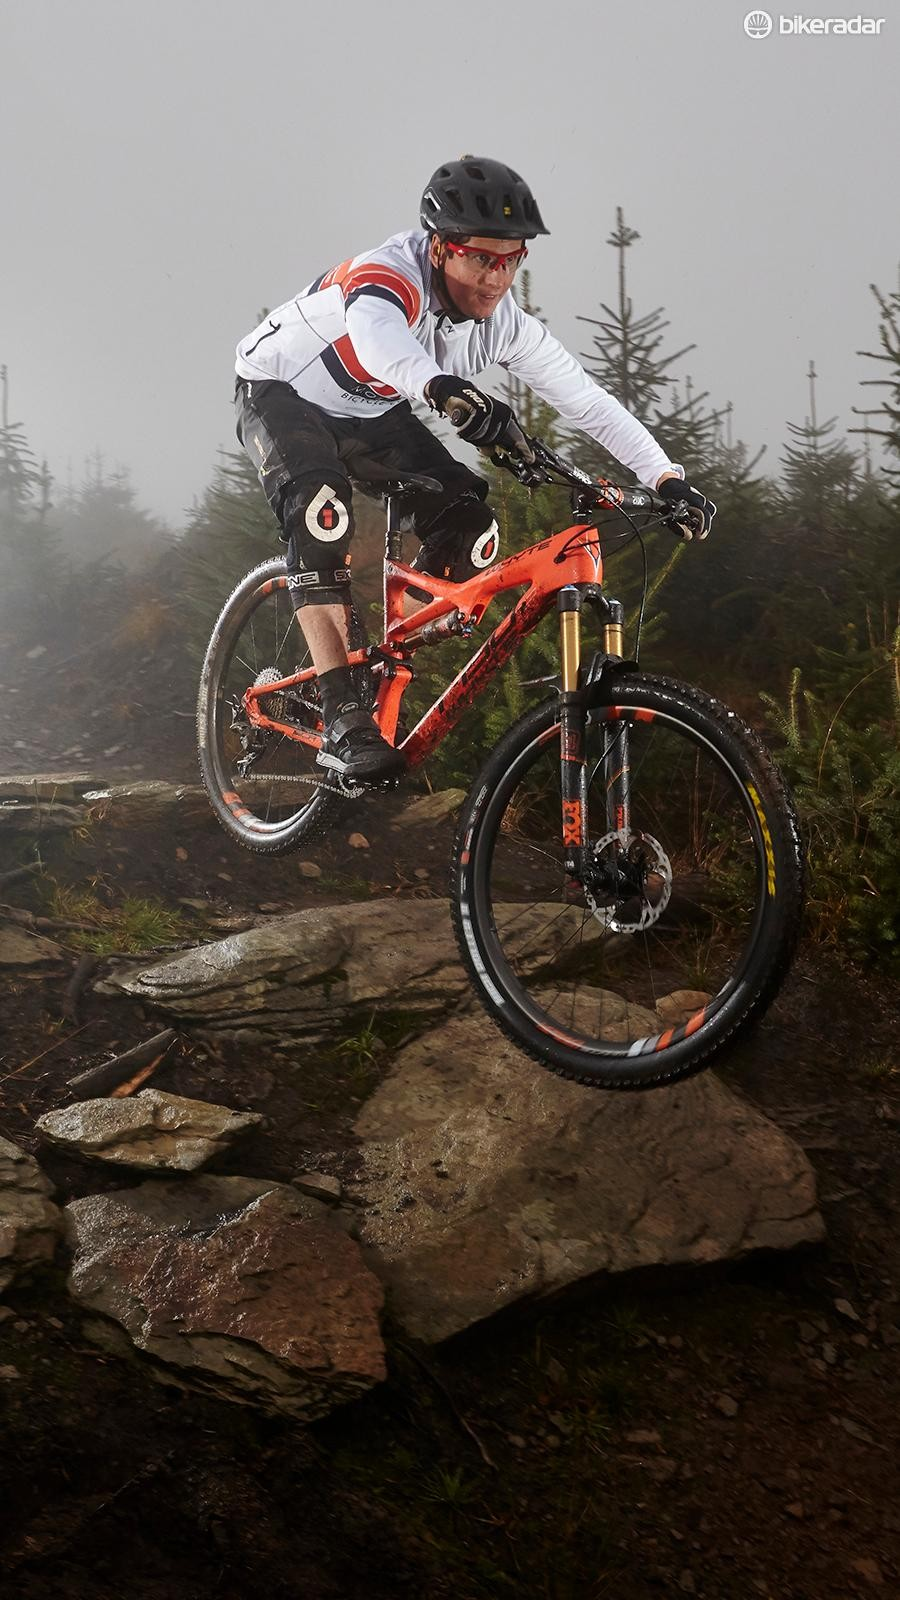 The low, long and slack geometry makes the T-130 C feel like a far more capable bike than its 130mm of travel might suggest